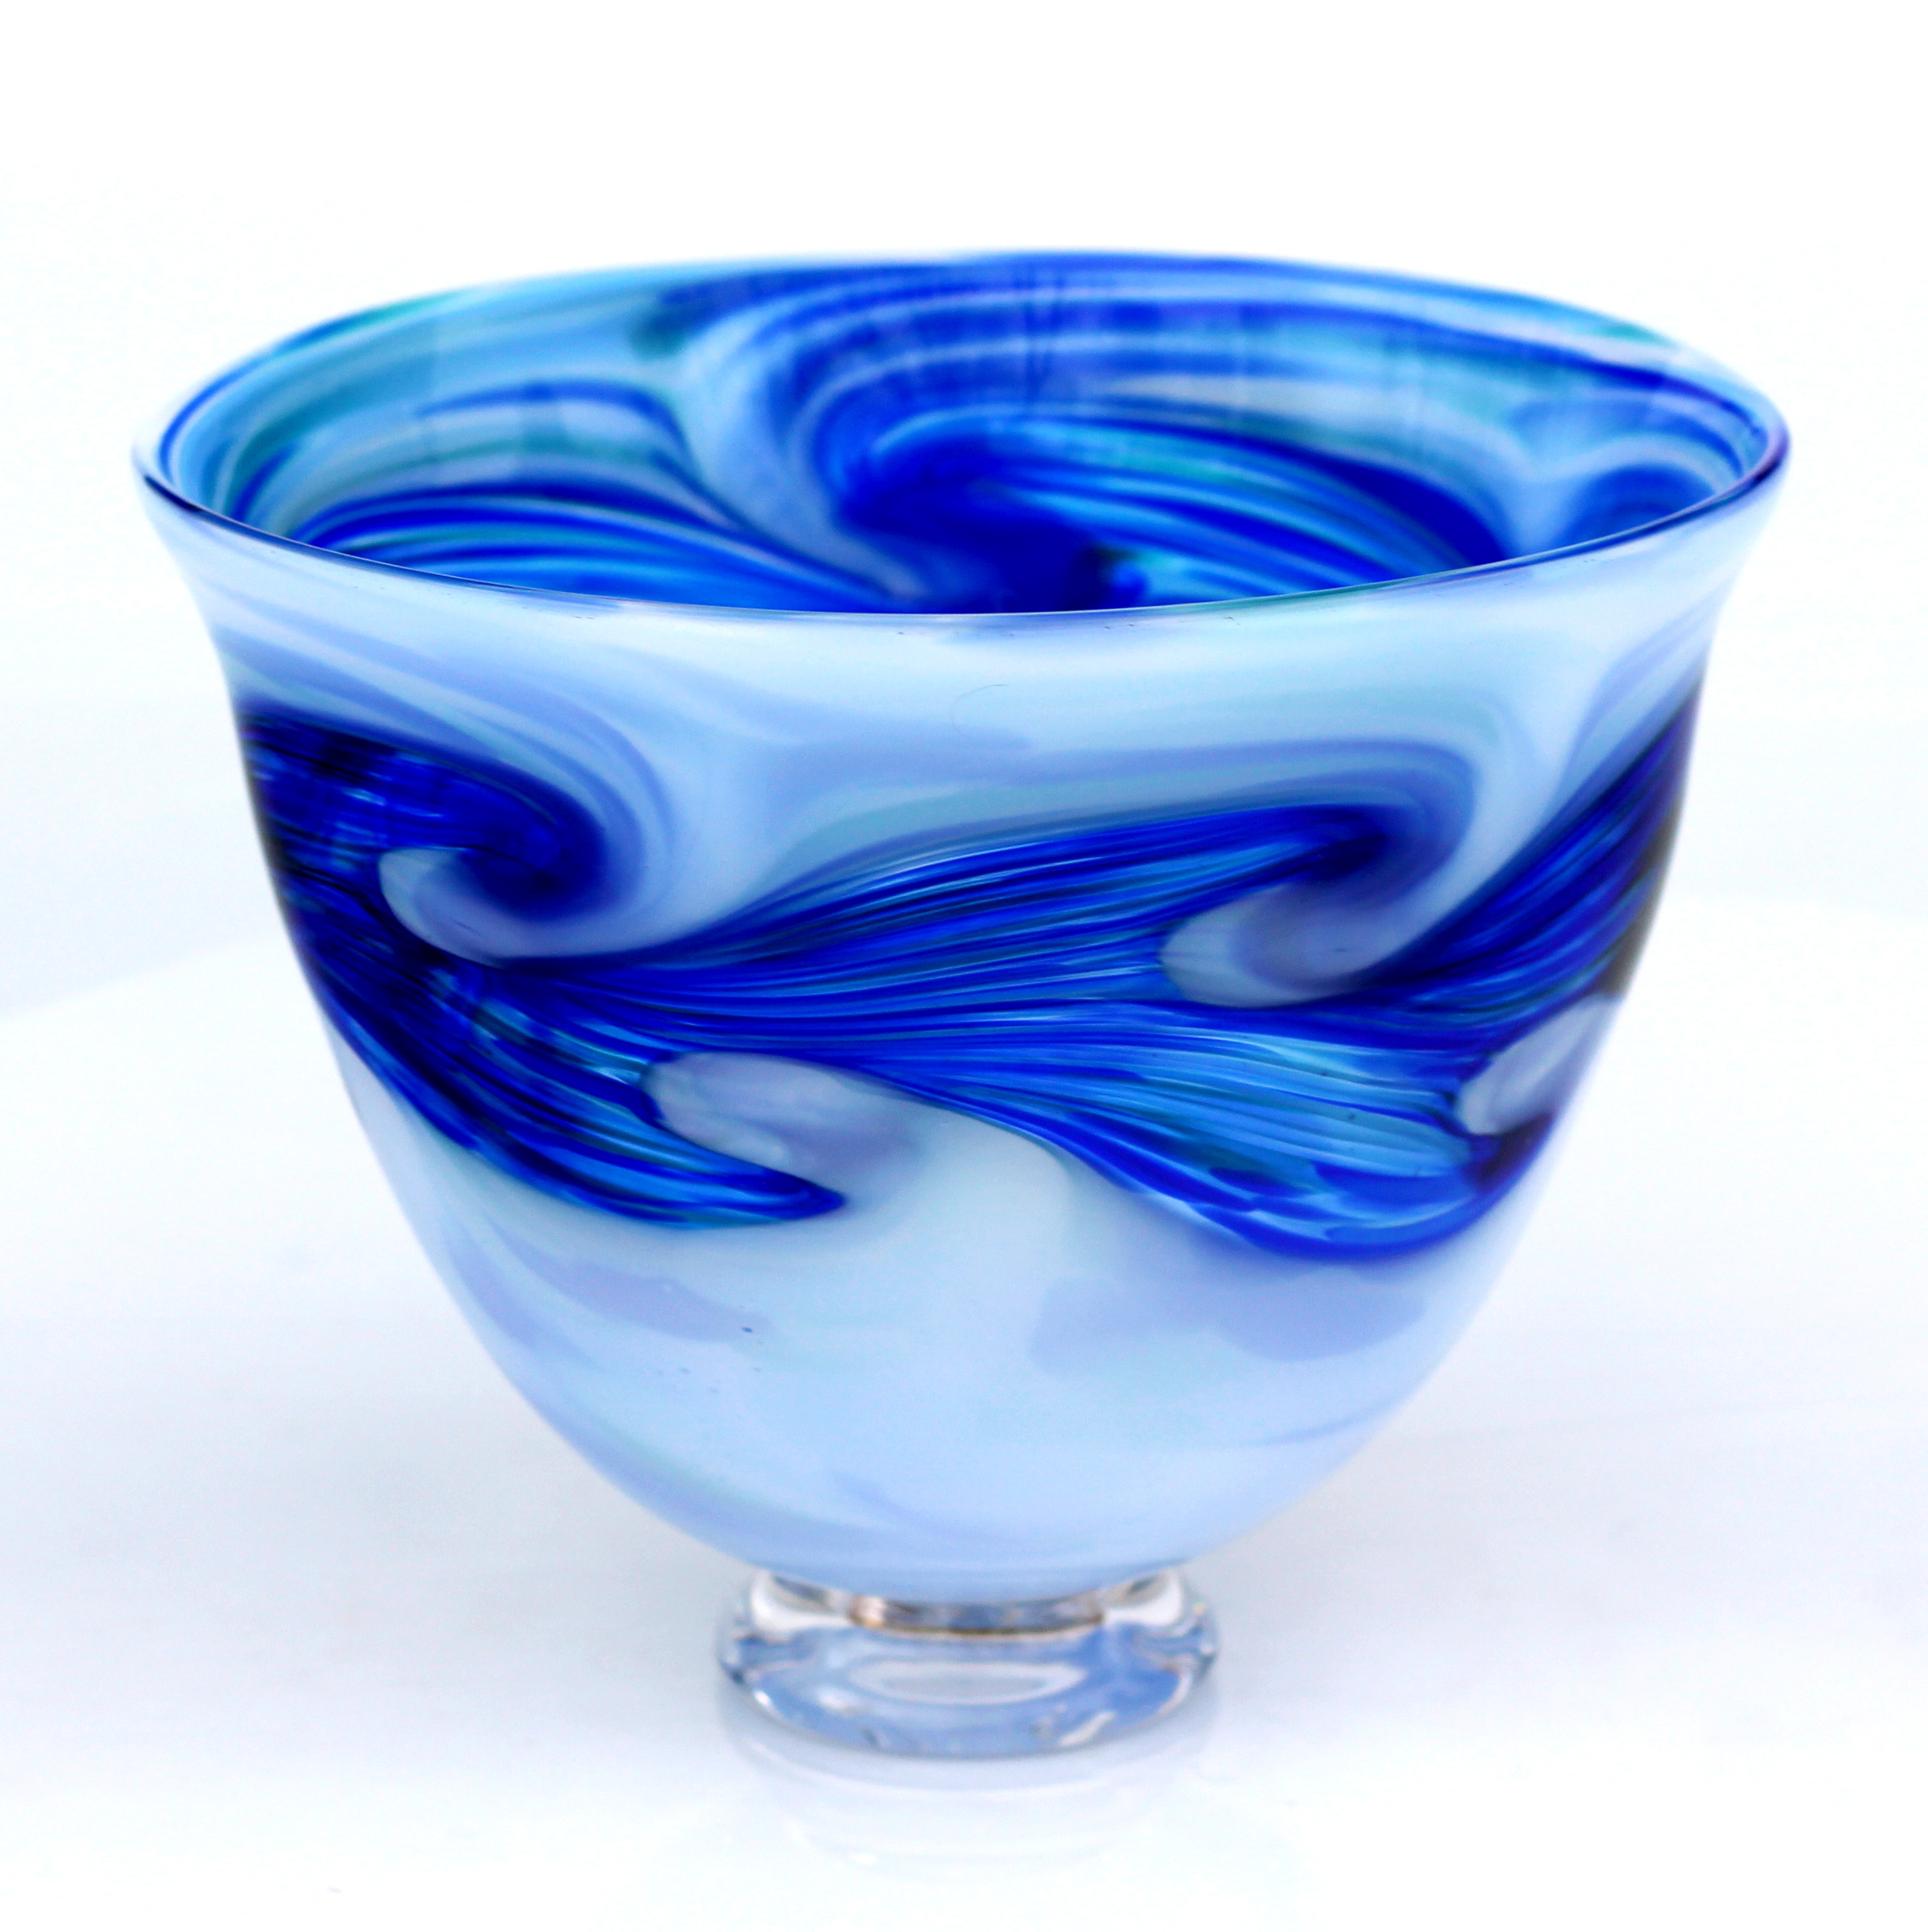 ocean-bowl-straight-lg-small-file